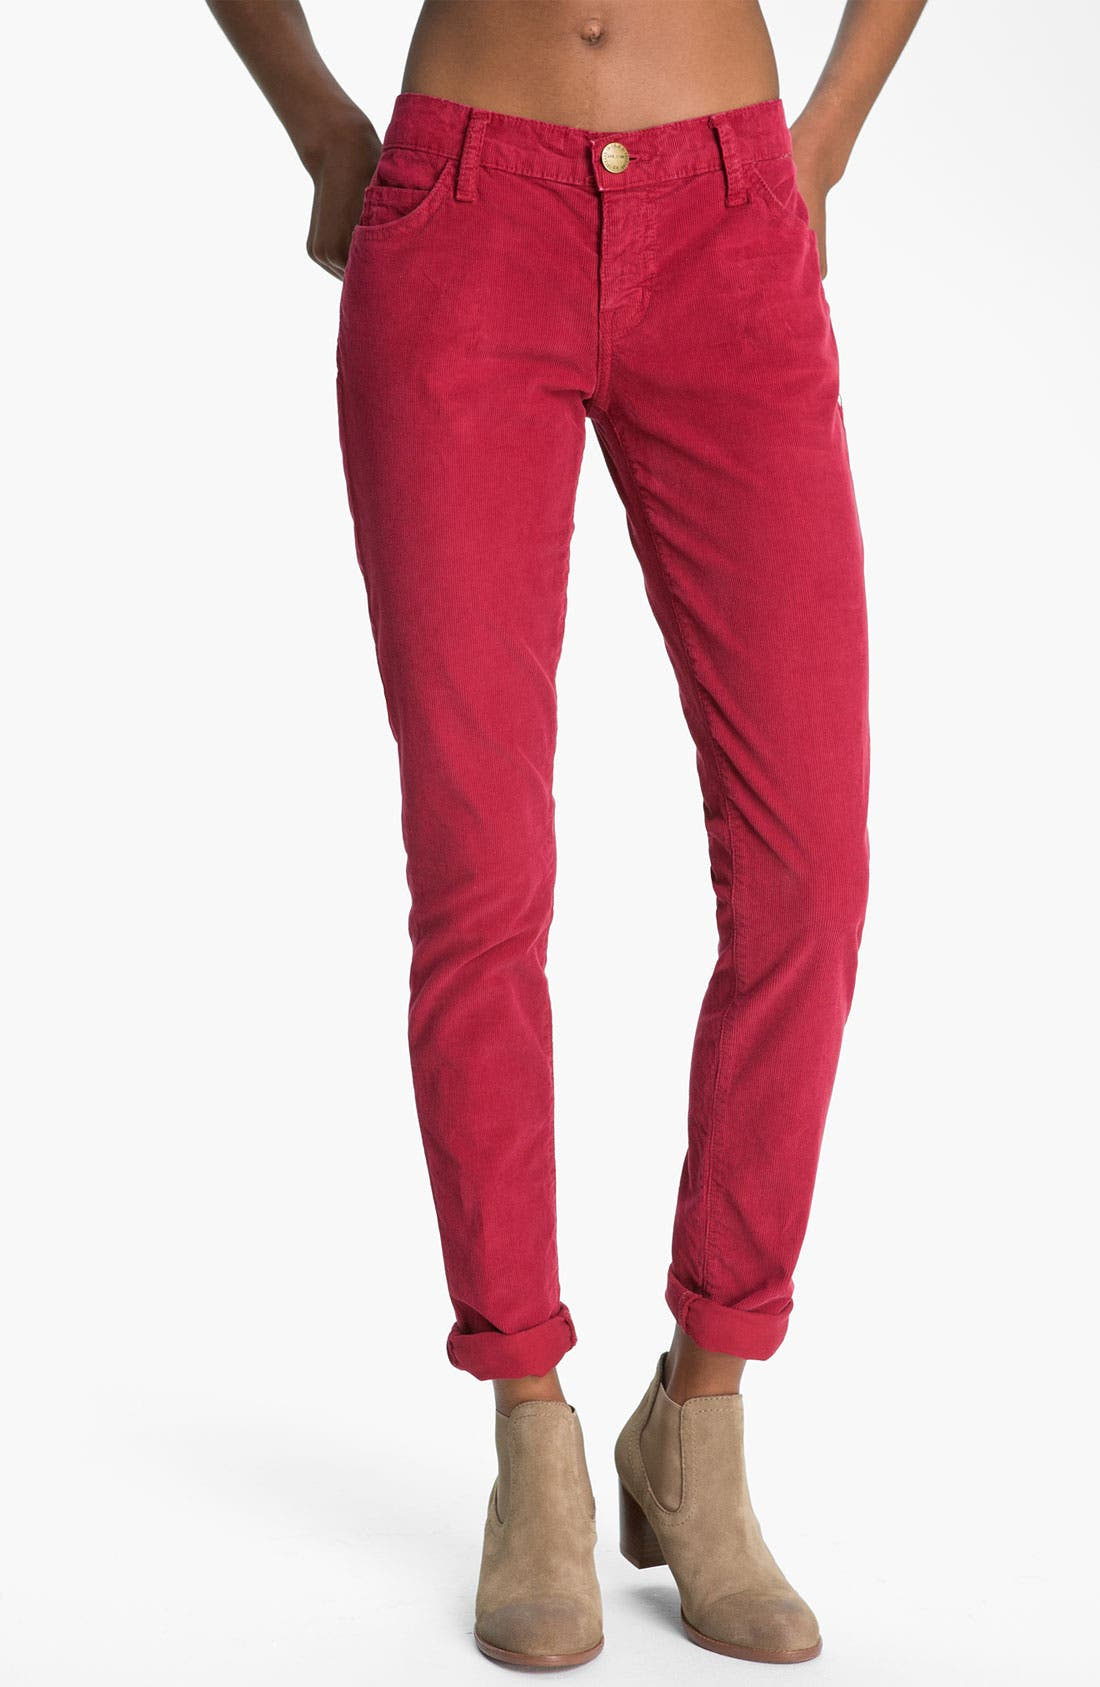 Main Image - Current/Elliott 'The Skinny' Stretch Jeans (Vintage Crimson)